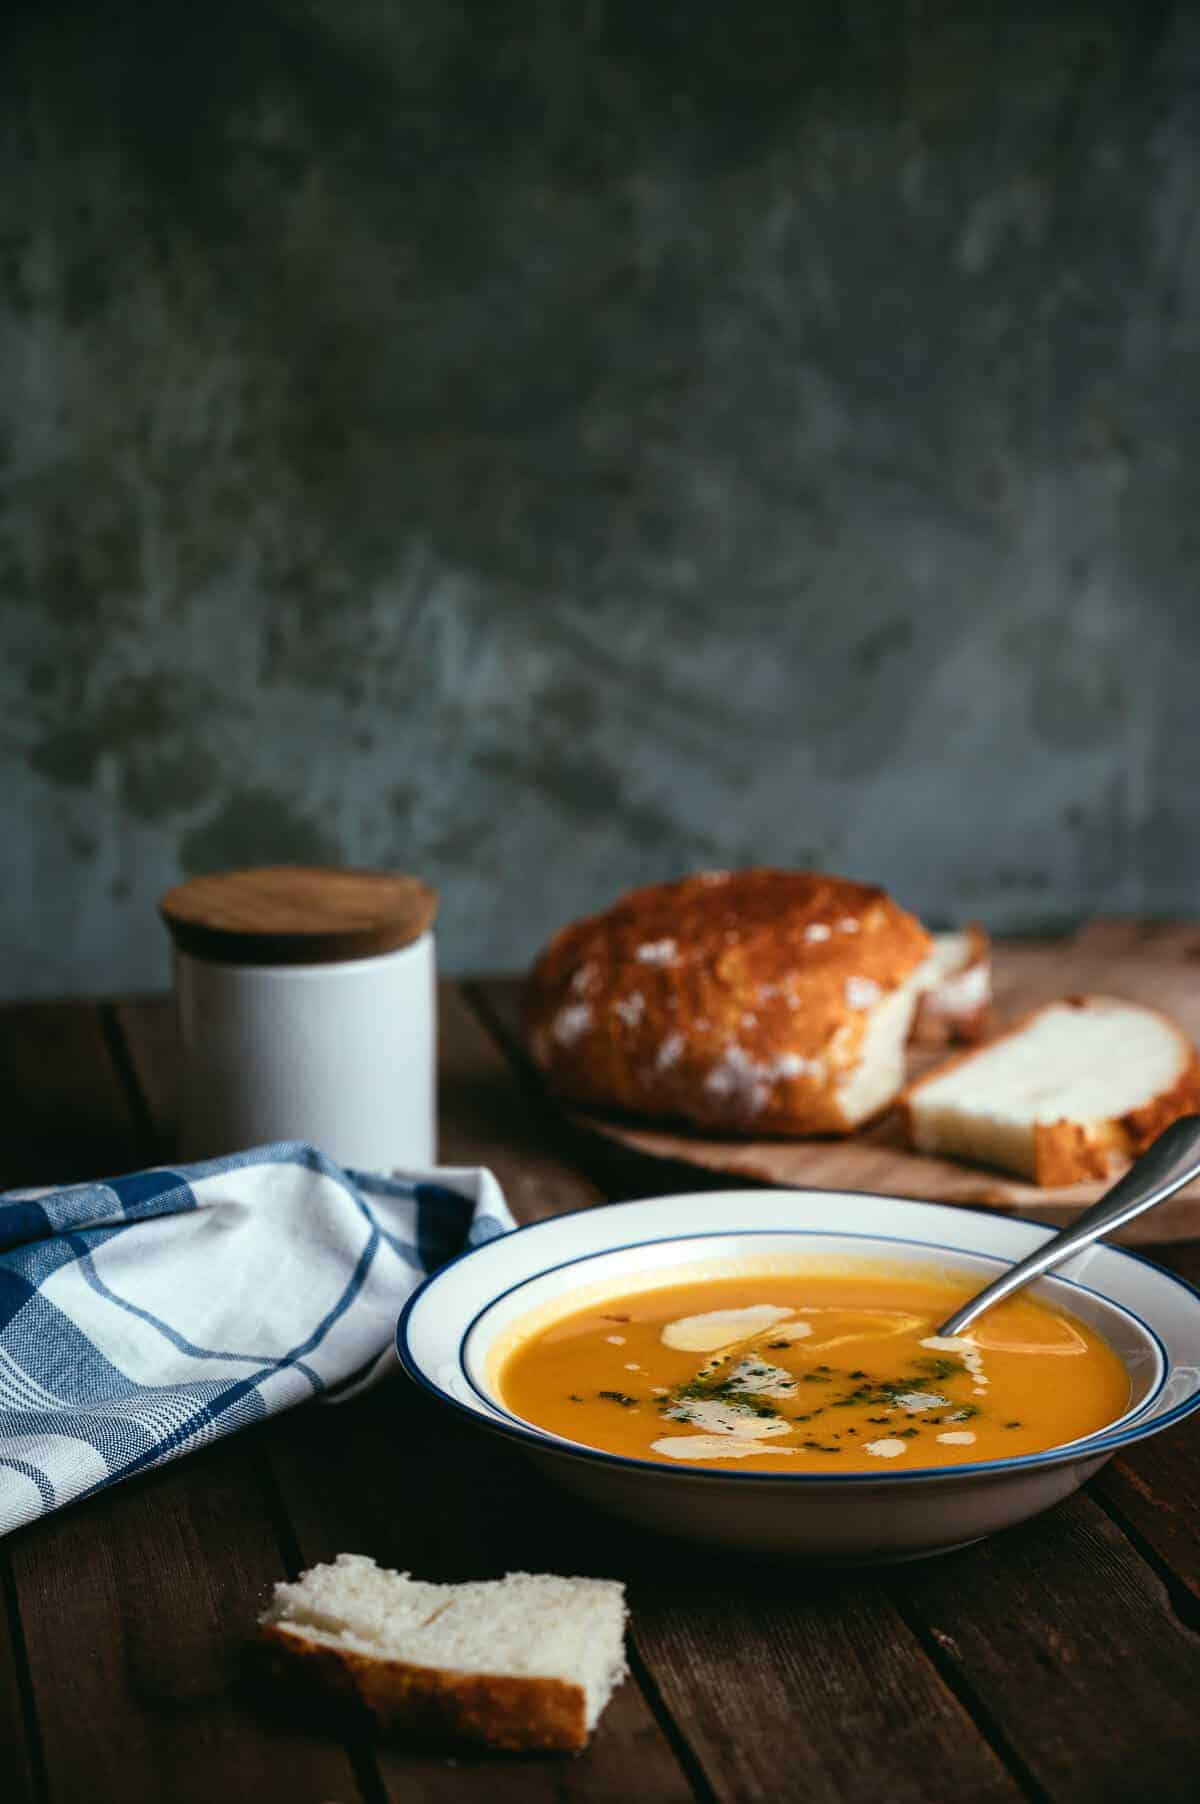 a bowl of soup on a table with fresh bread